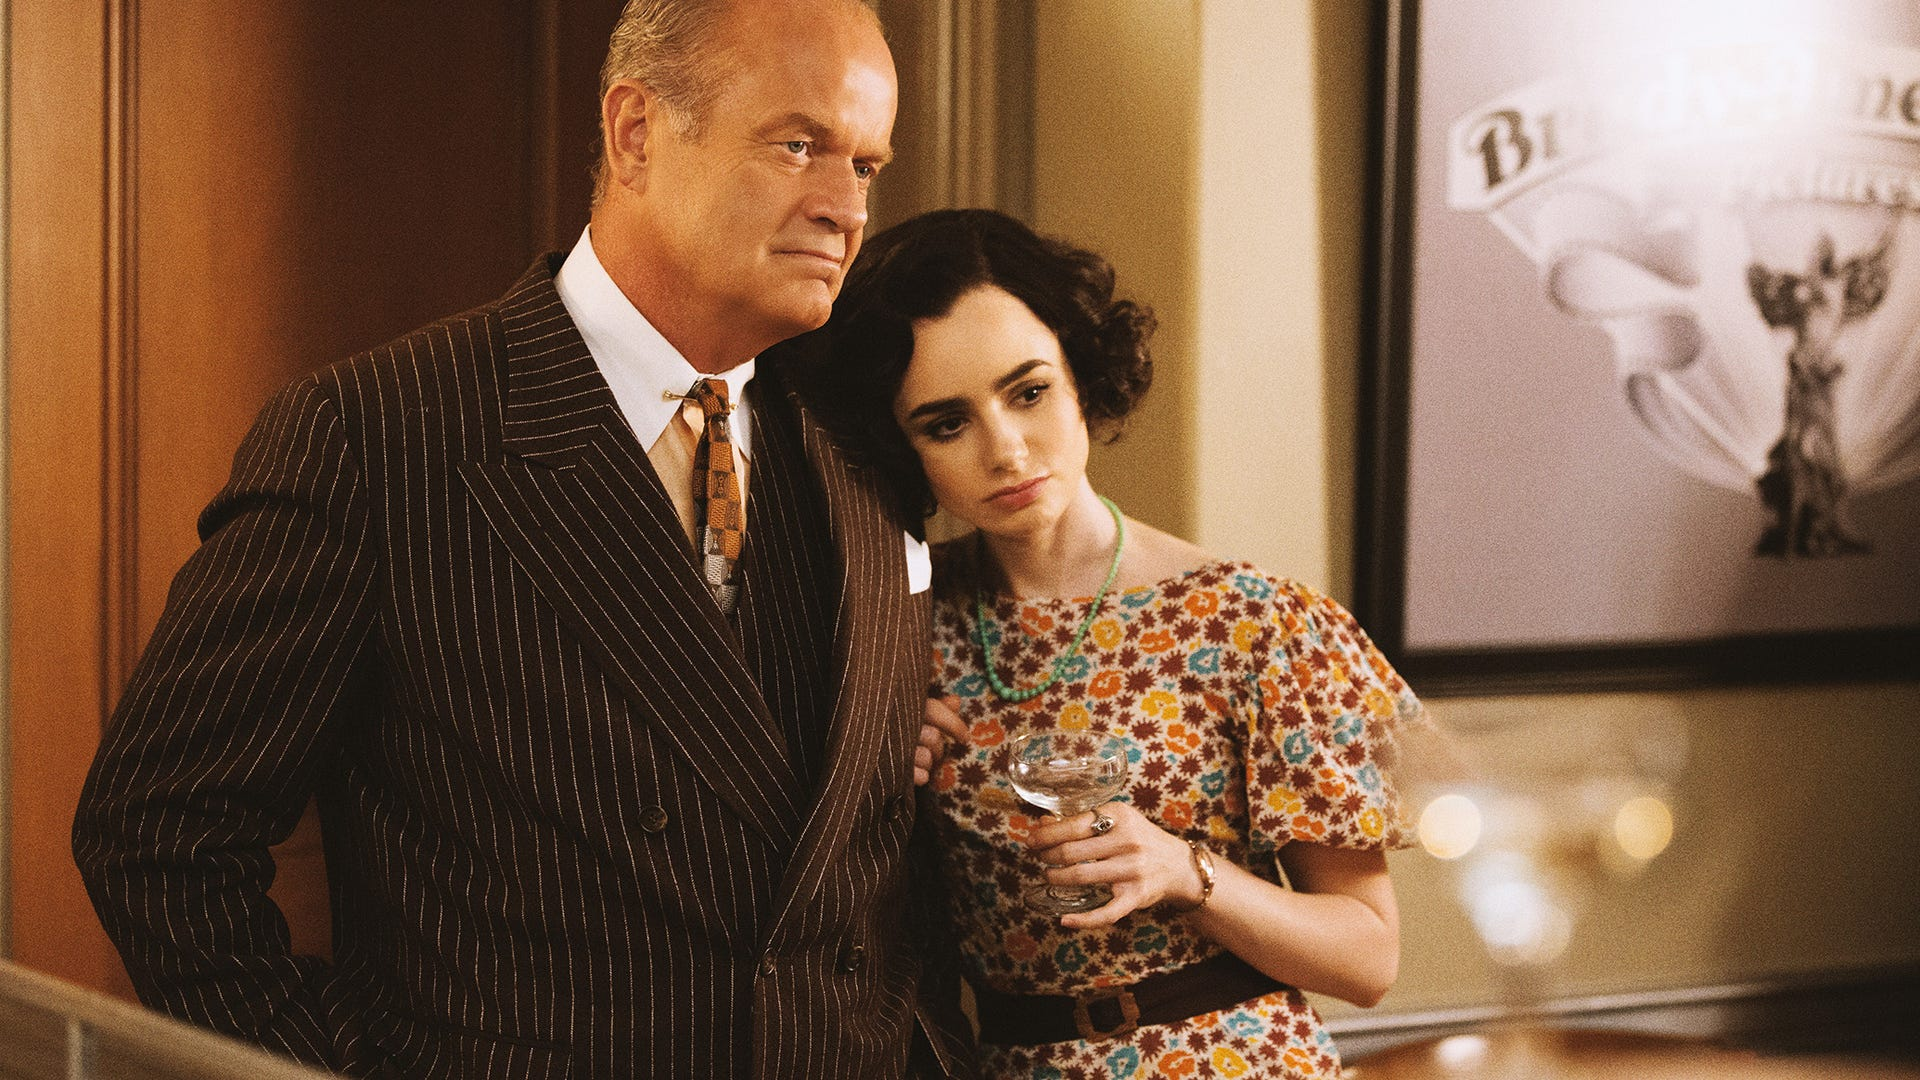 Kelsey Grammer and Lily Collins, The Last Tycoon